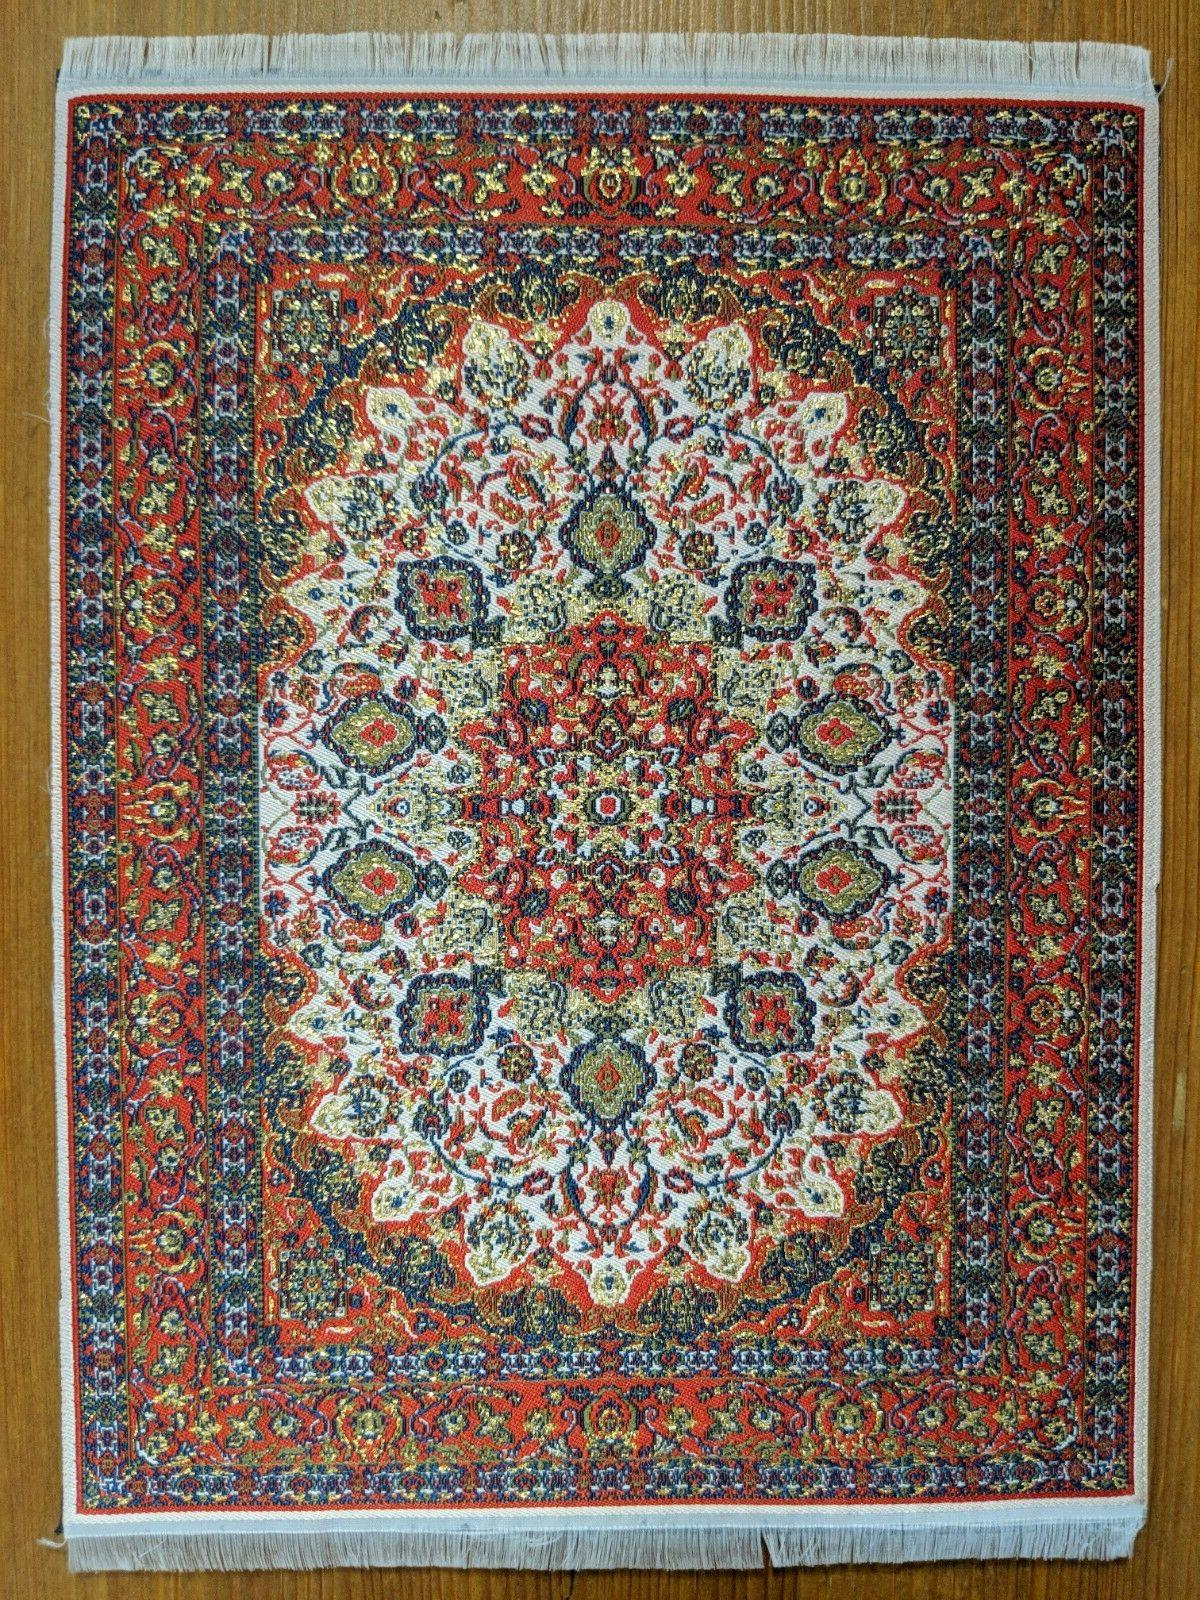 Woven - Turkish Carpet